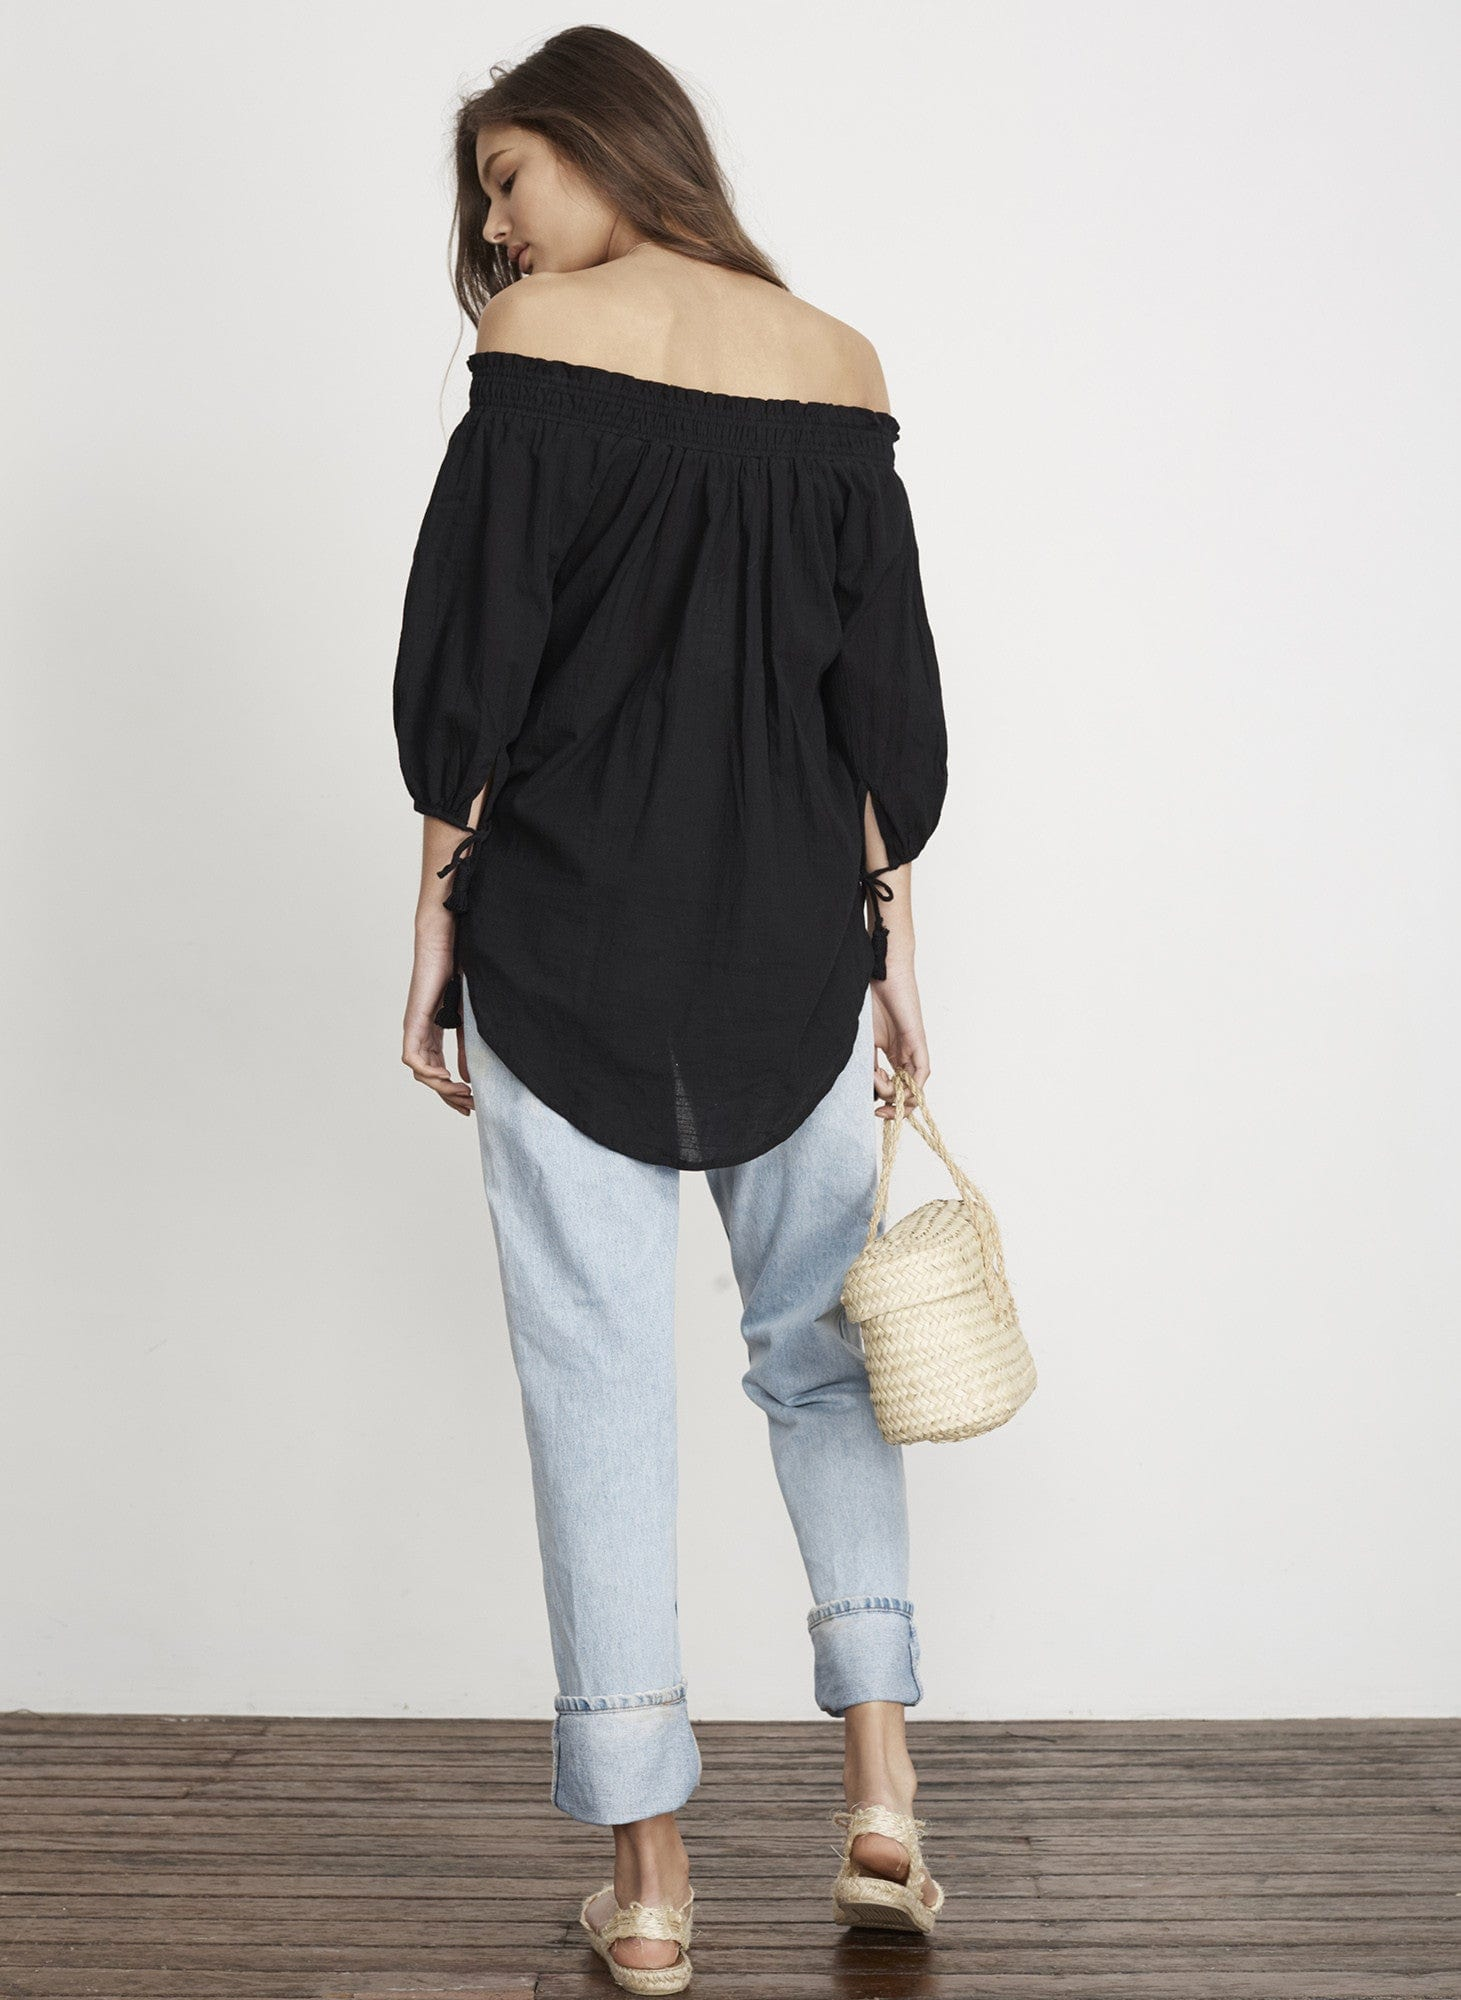 PLAIN BLACK - SANDS TOP